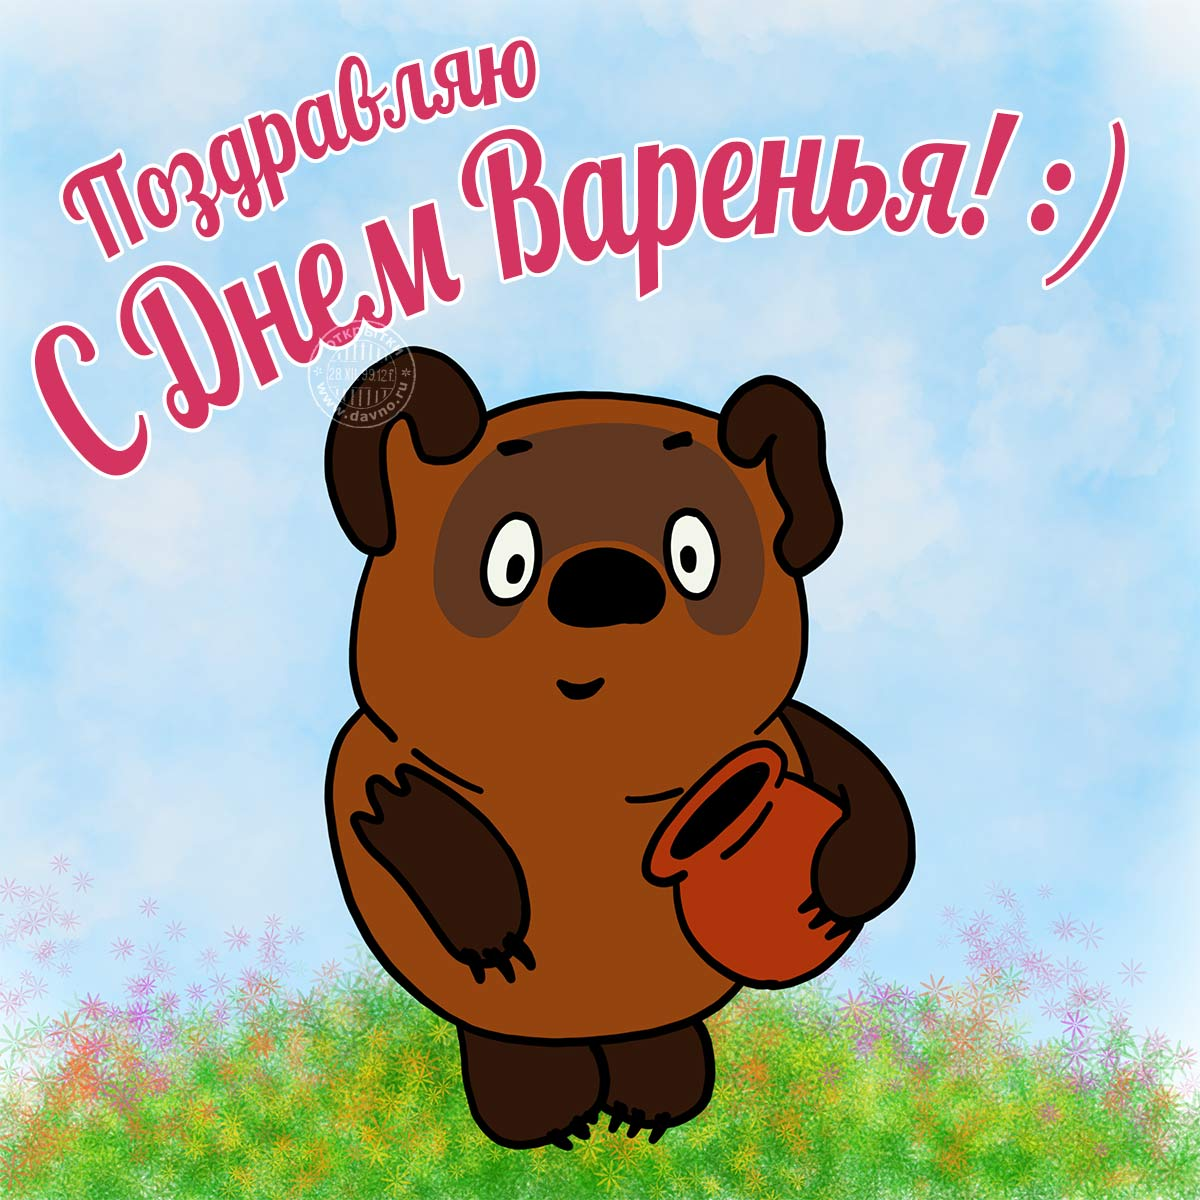 http://www.davno.ru/assets/images/cards/big/birthday-752.jpg